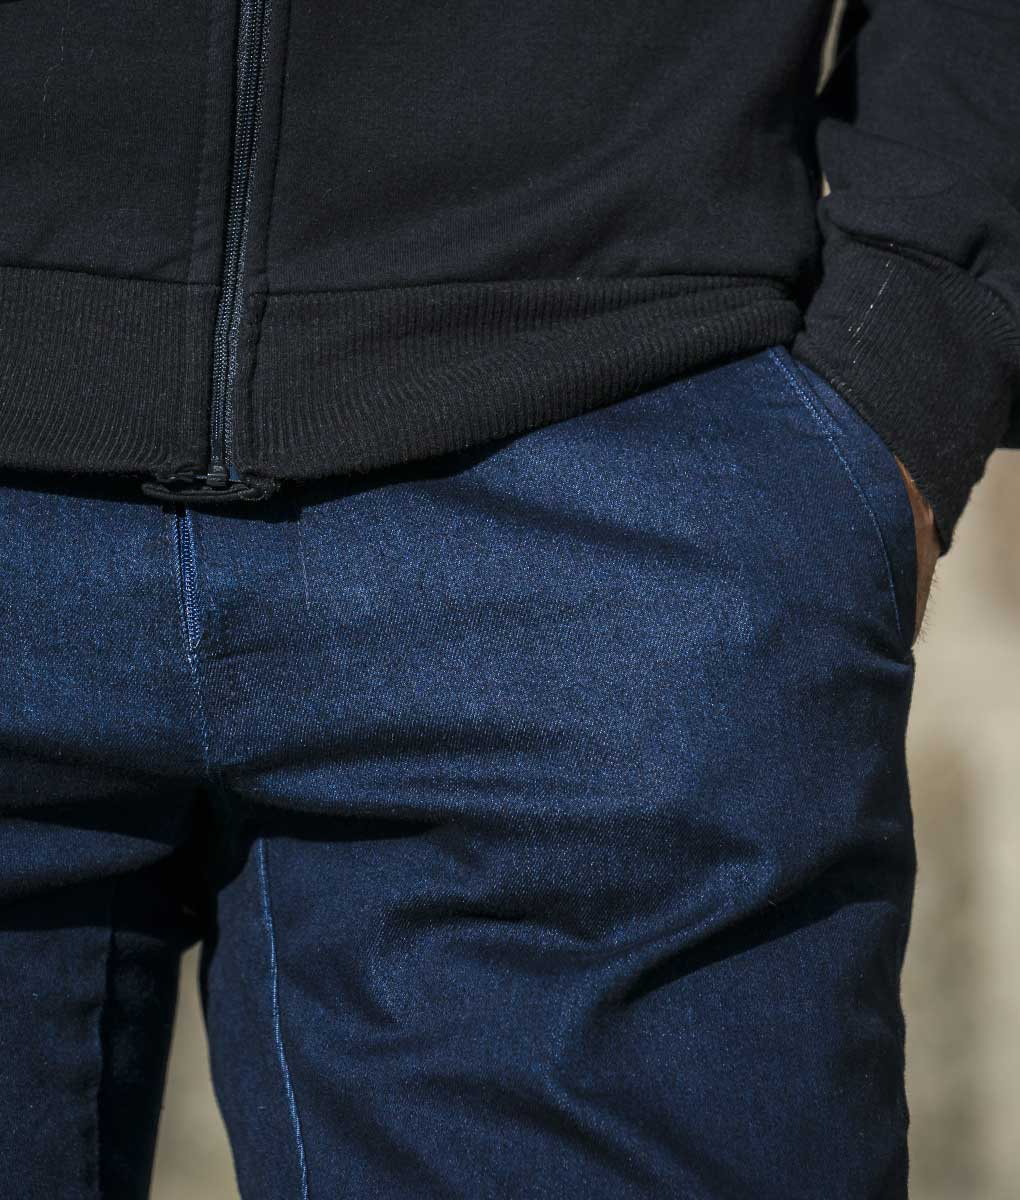 casual-cycling-trousers- pocket